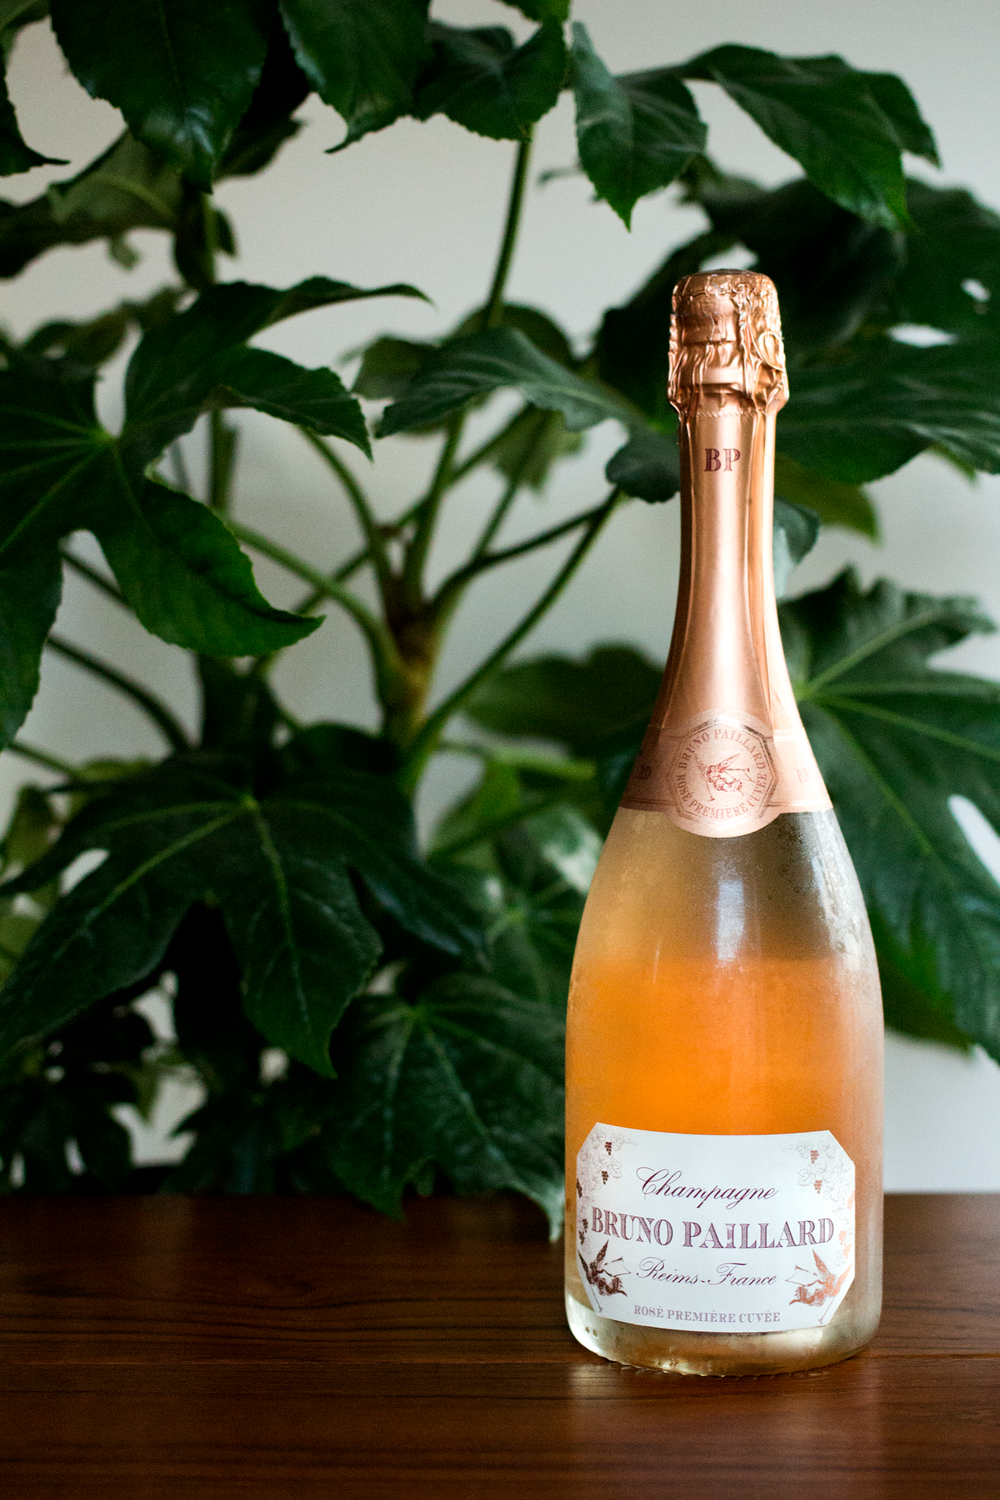 Bruno-Paillard-Rose-Premiere-Curvee-Champagne-Review-by-Bottle-Bitches.png